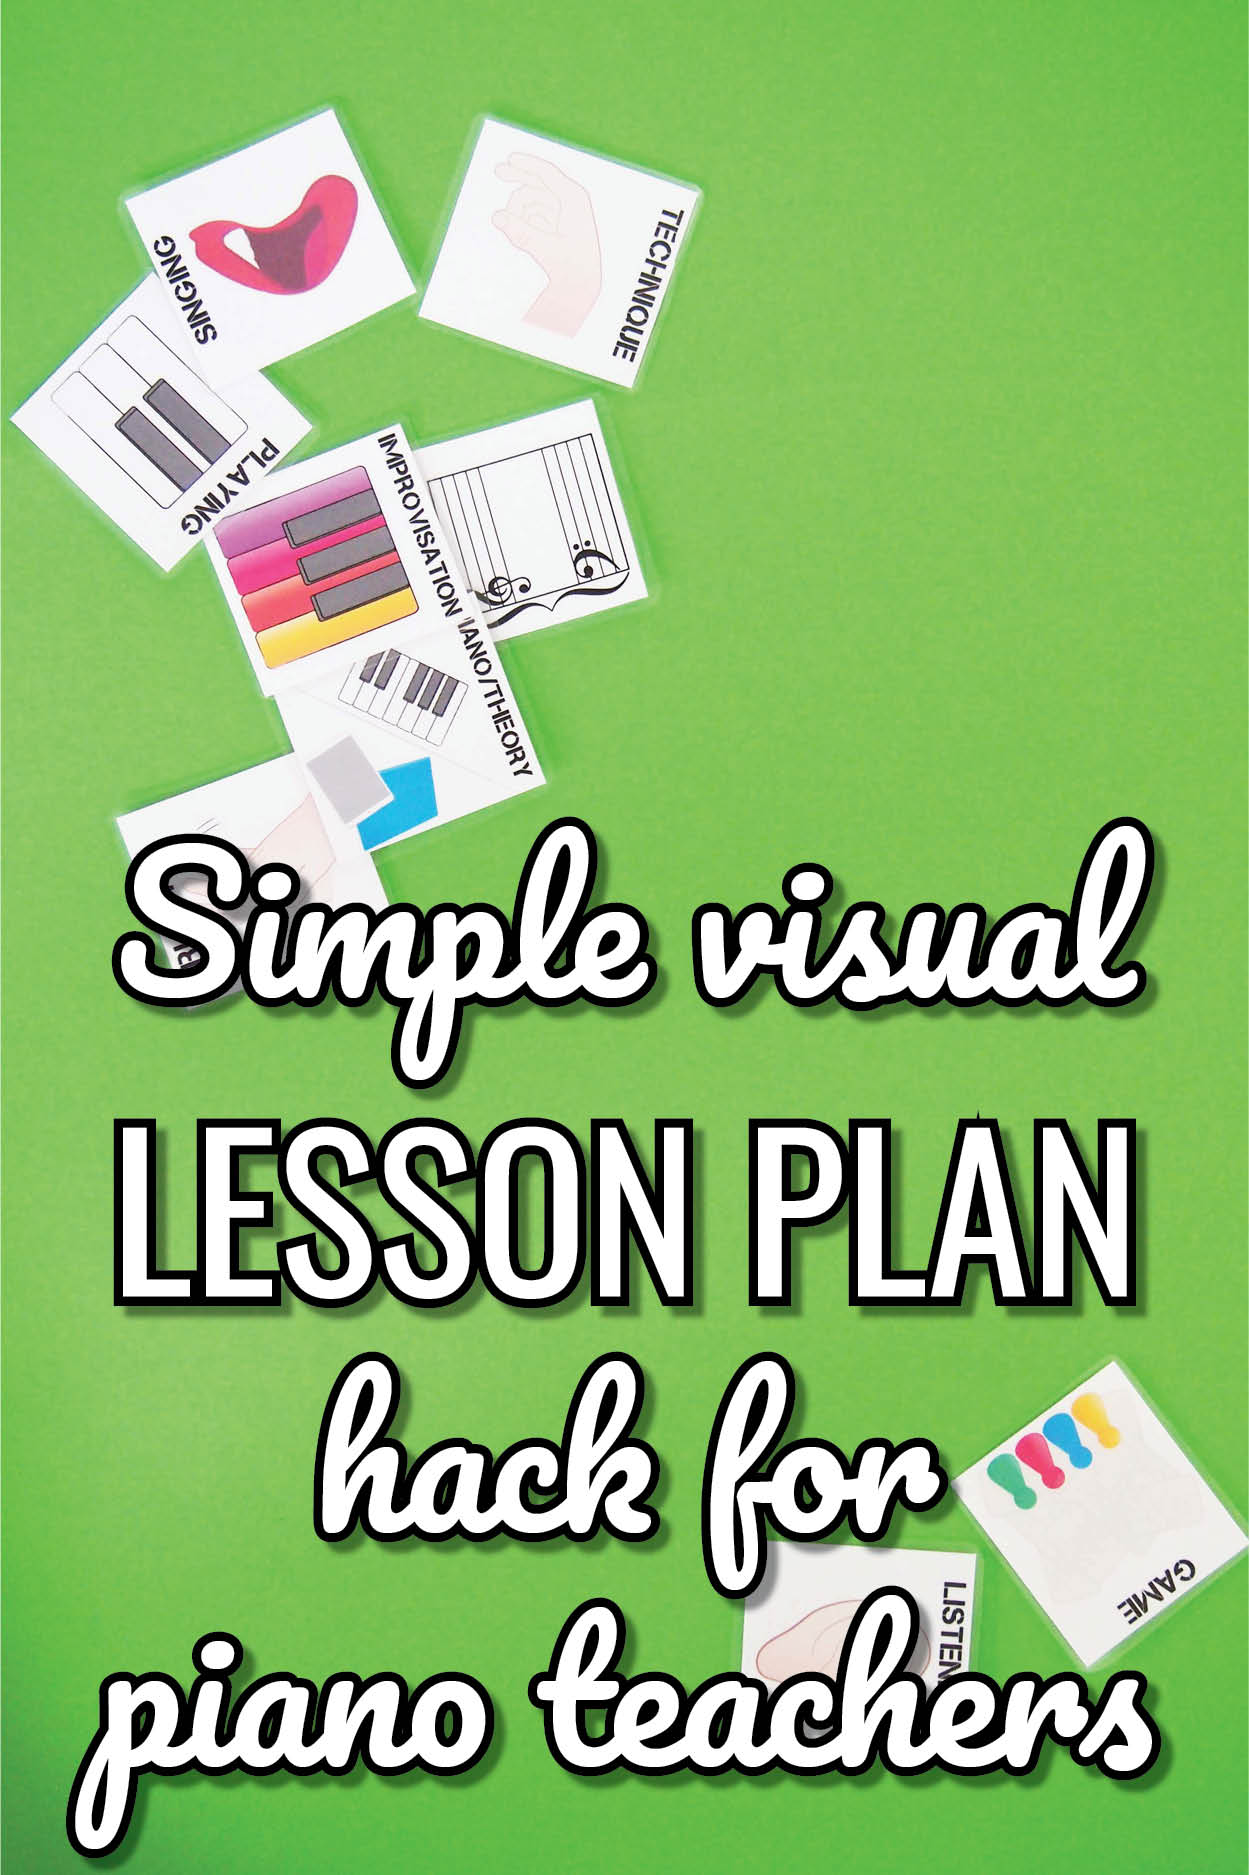 A simple hack using visual lesson planning for piano teachers